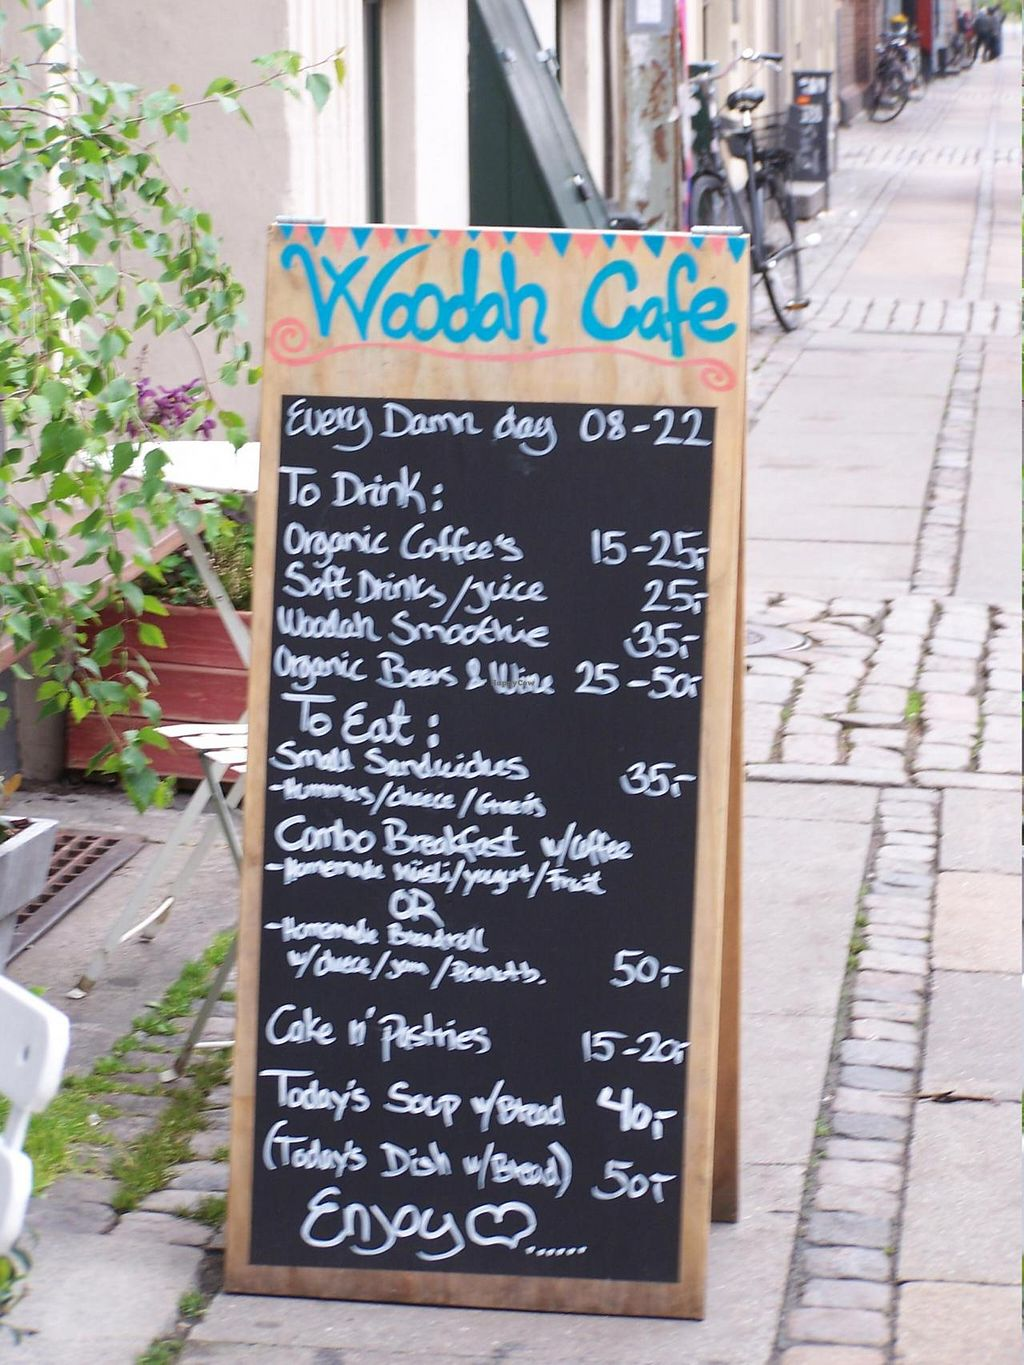 """Photo of CLOSED: Woodah Cafe  by <a href=""""/members/profile/Amy1274"""">Amy1274</a> <br/>Menu (May 2014) <br/> May 17, 2014  - <a href='/contact/abuse/image/47367/70211'>Report</a>"""